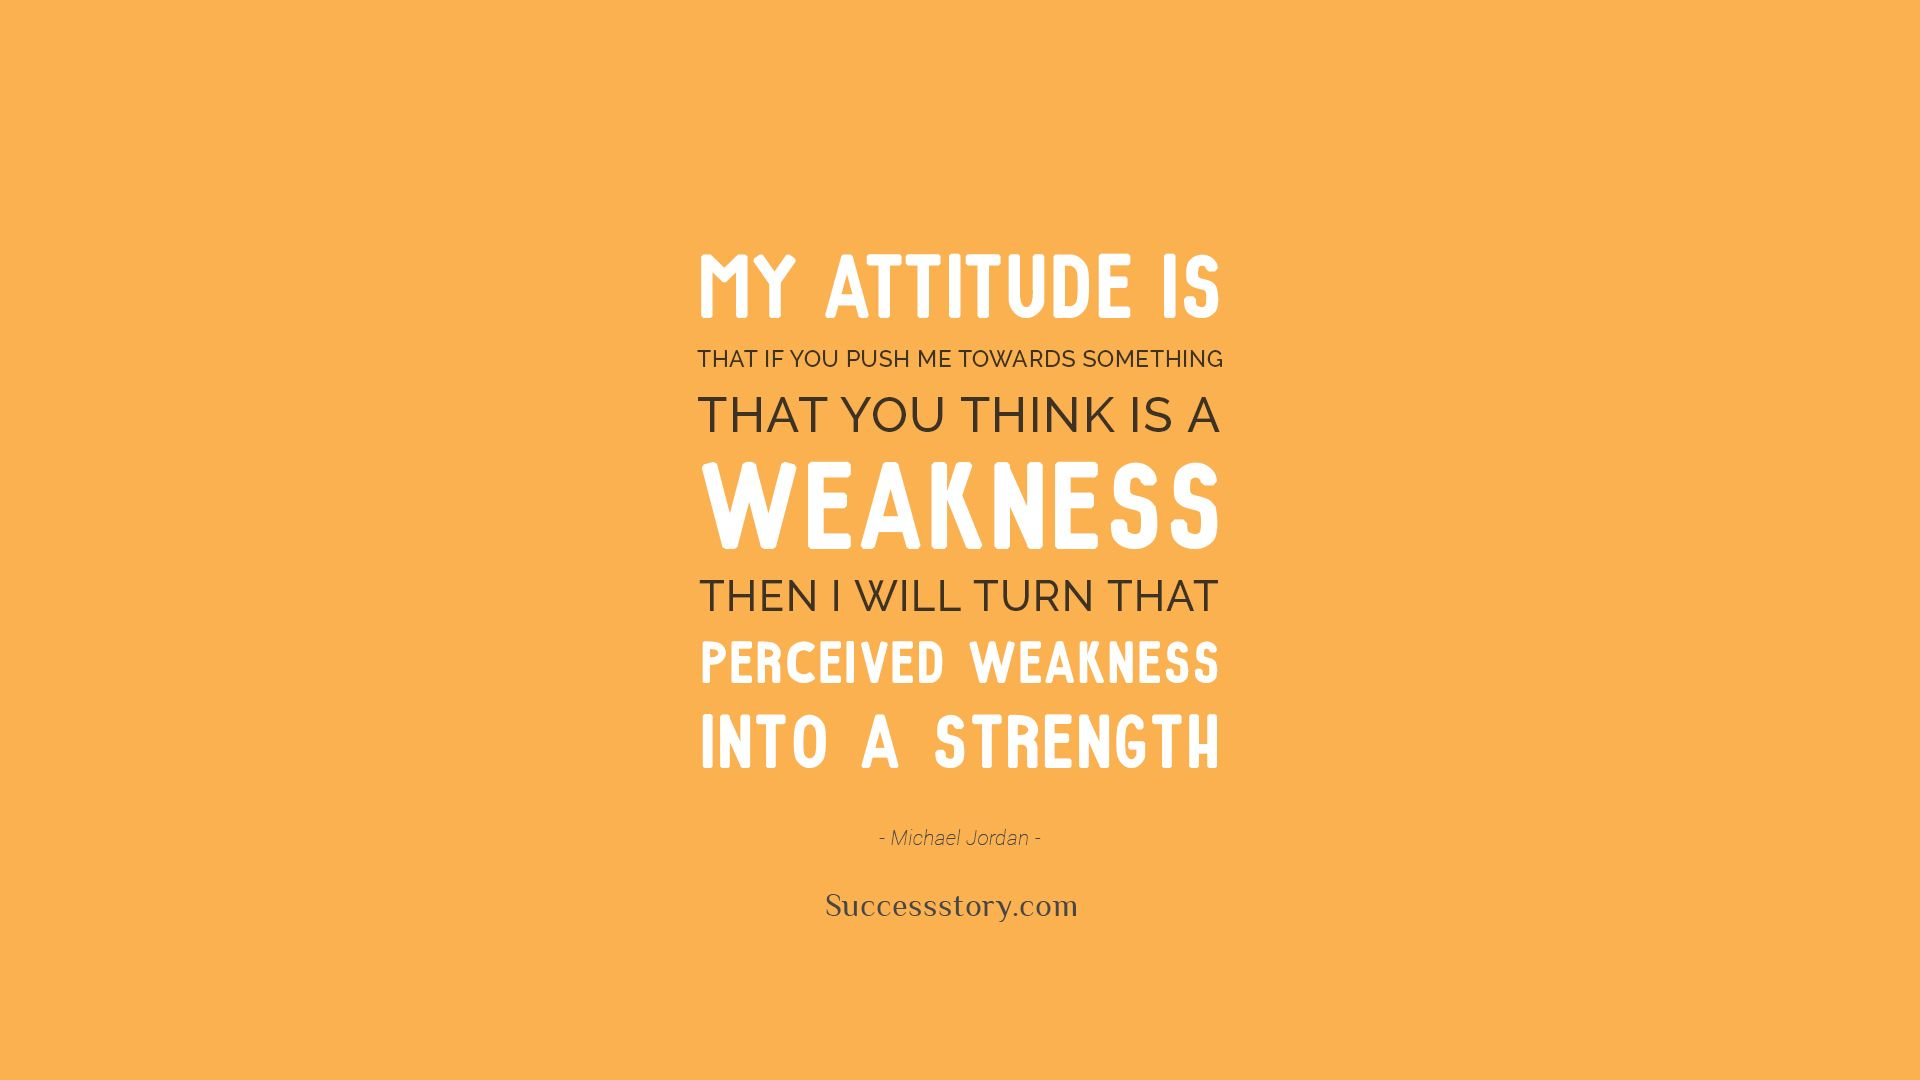 My Attitude Is That If You Push Me Towards Something That You Think